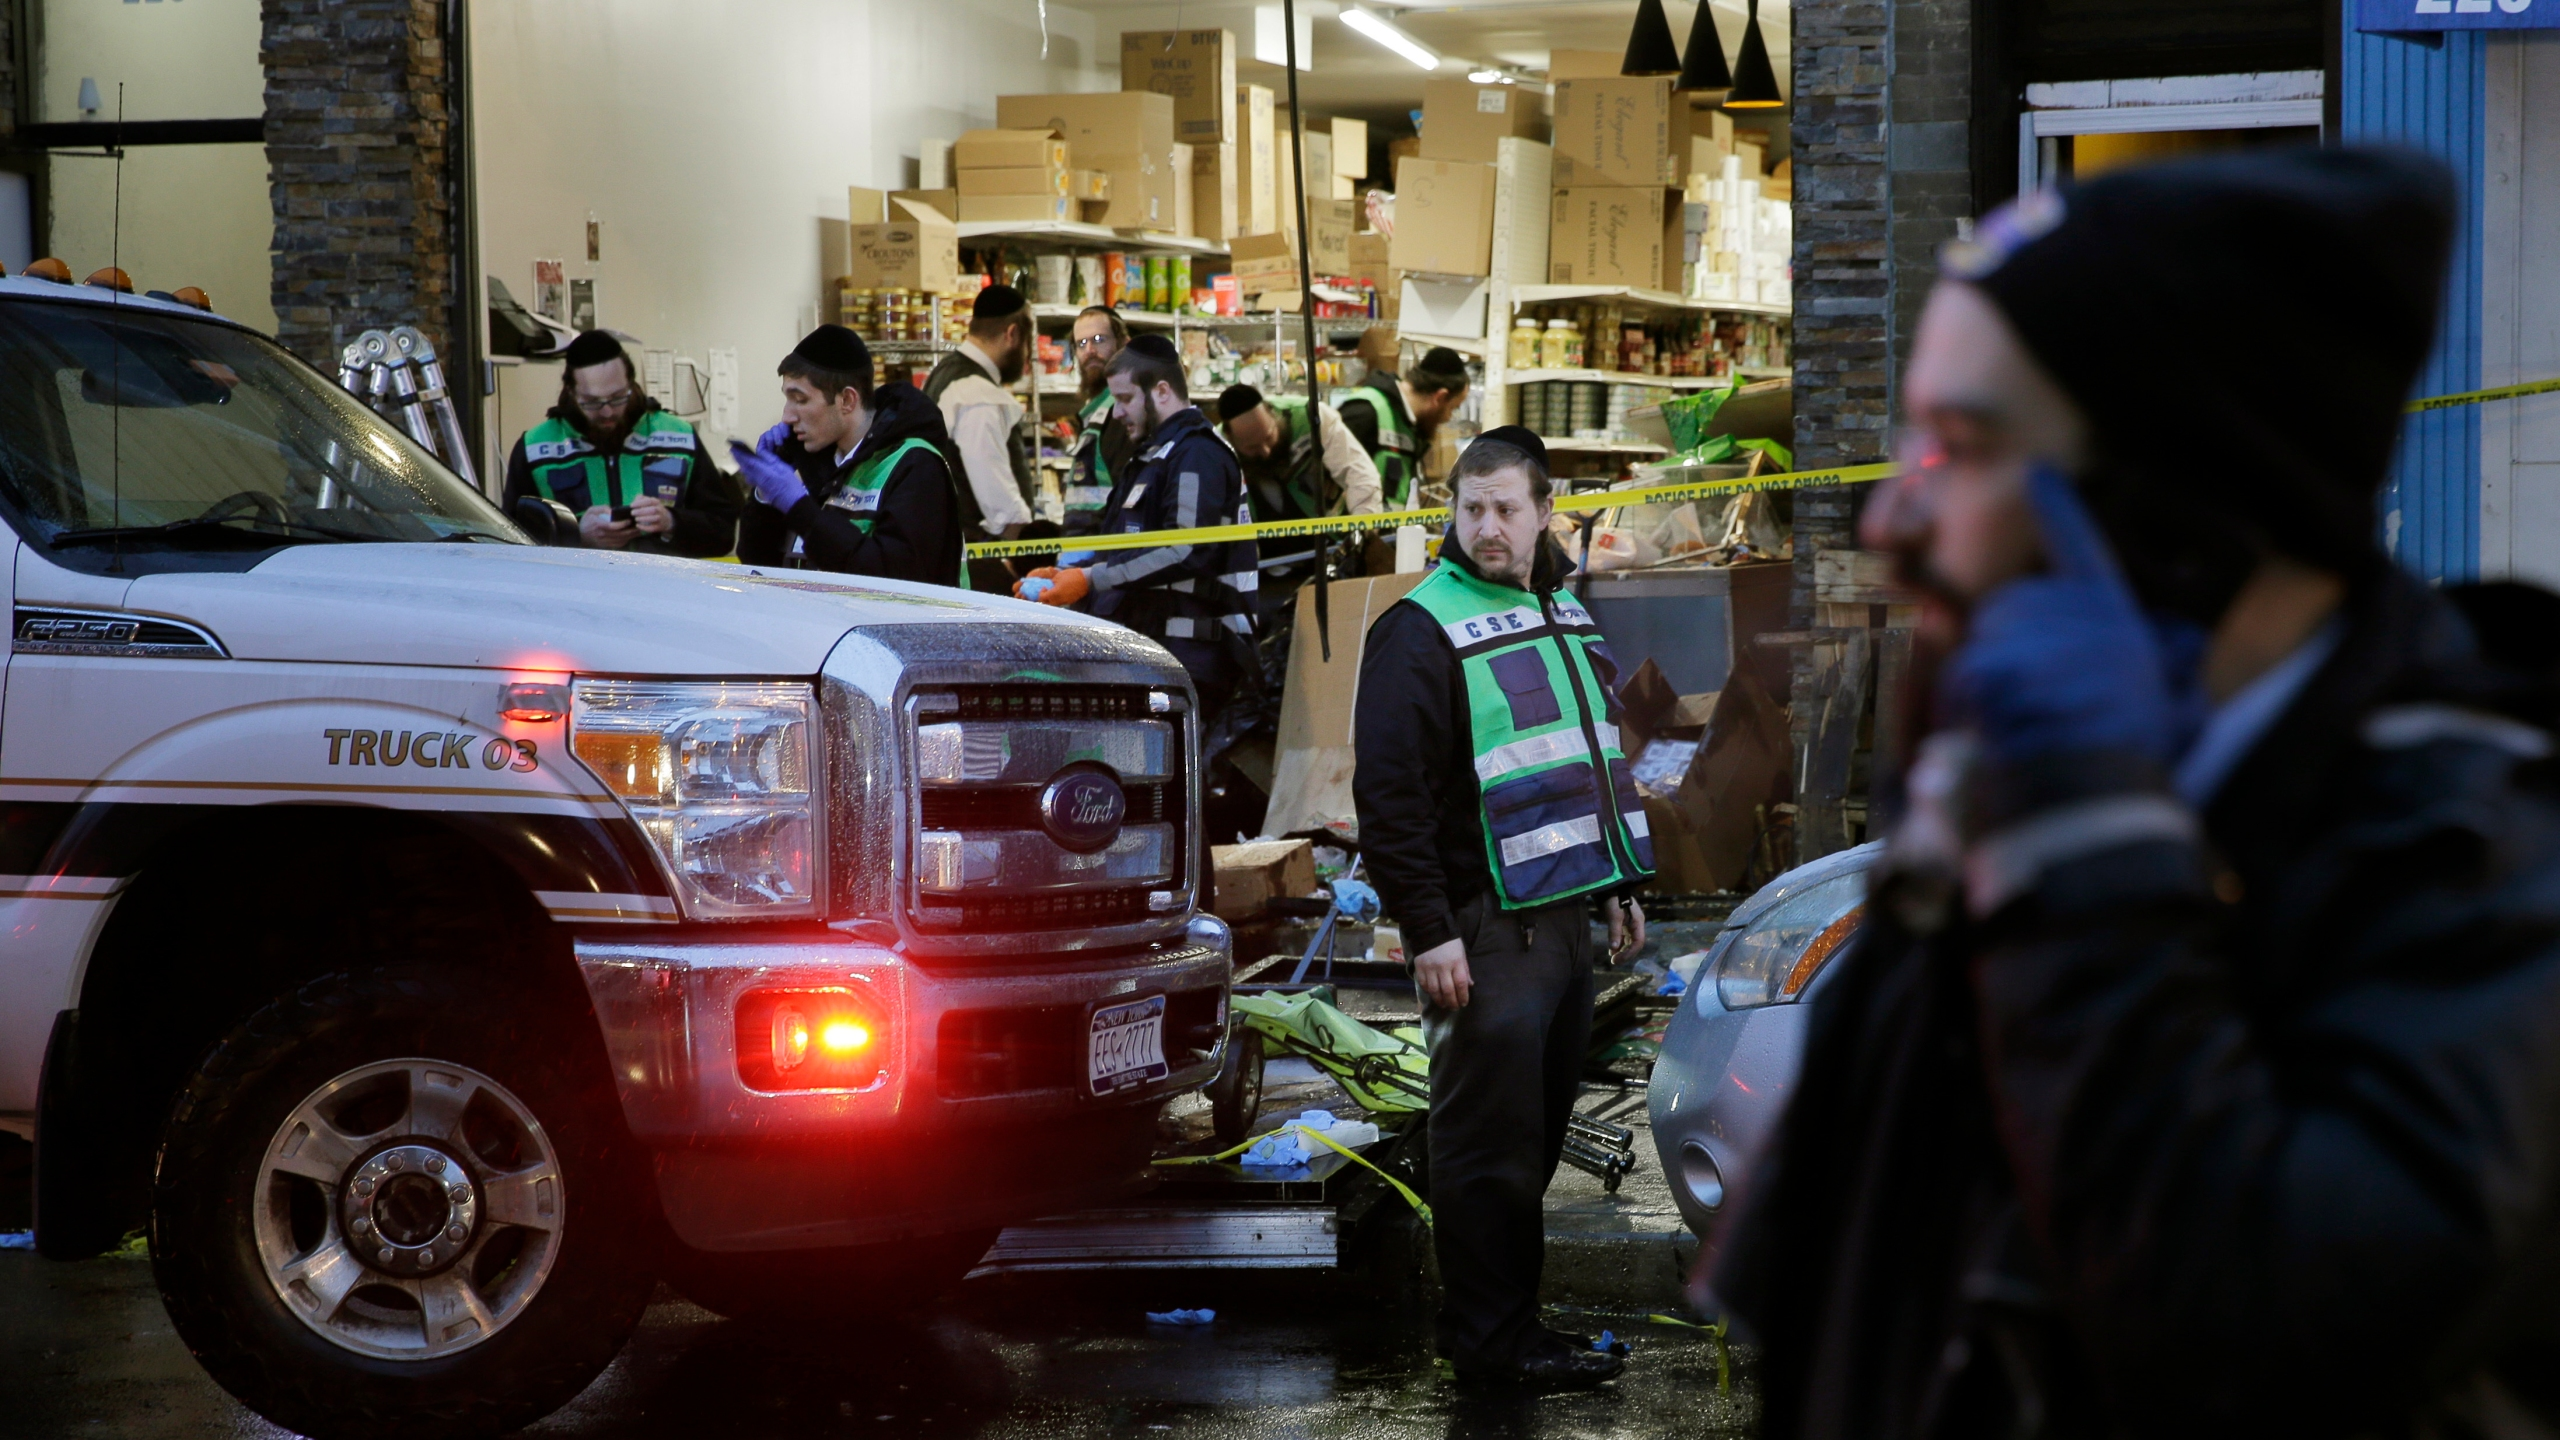 Emergency responders work at a kosher supermarket, the site of a shooting in Jersey City, N.J., Wednesday, Dec. 11, 2019. Jersey City Mayor Steven Fulop said authorities believe gunmen targeted the market during a shooting that killed multiple people Tuesday.